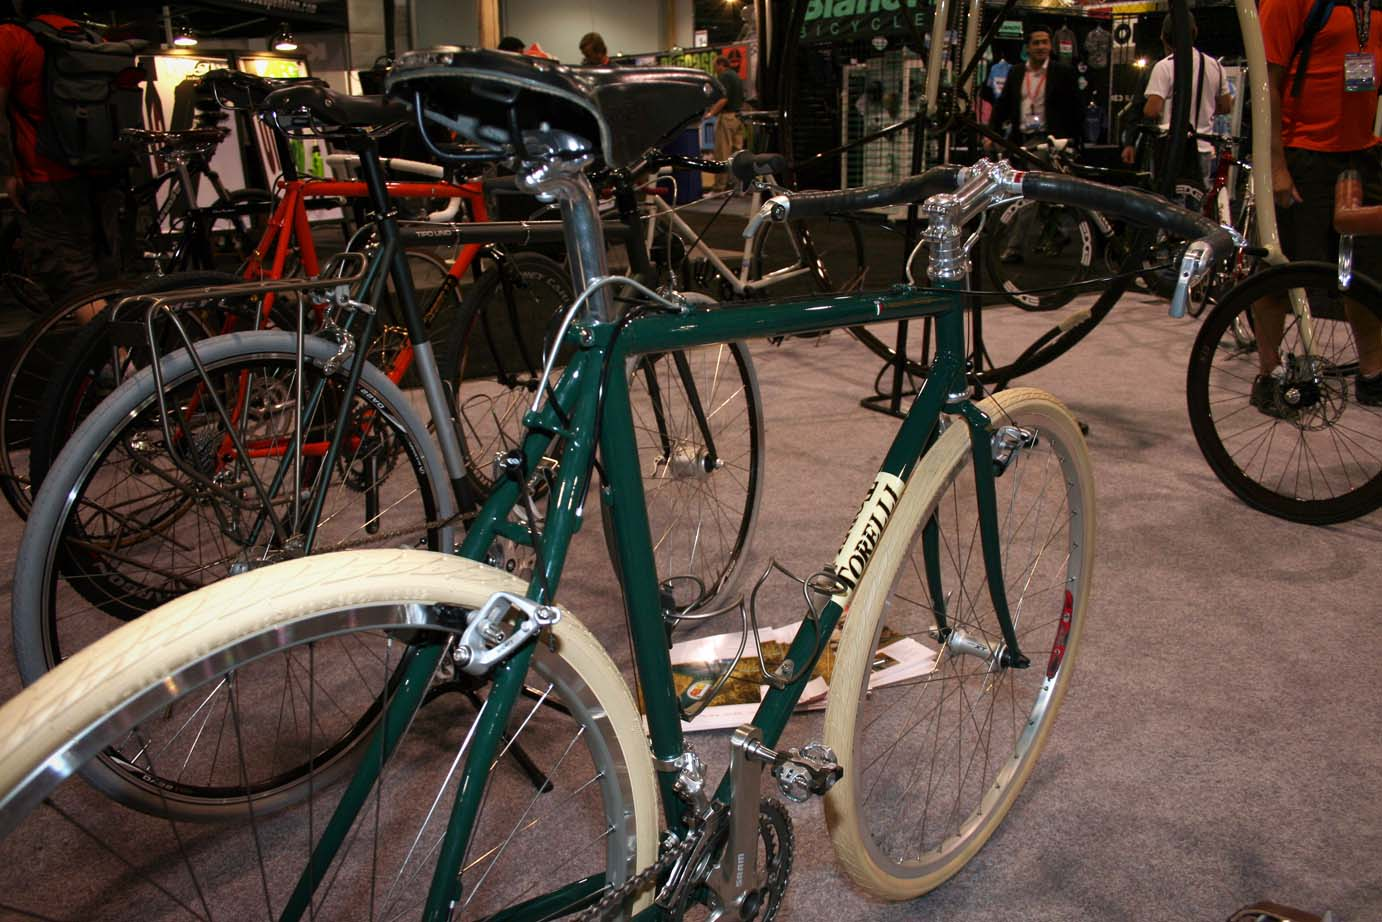 Torelli showed off two new cyclocross frames, built from Columbus Zona